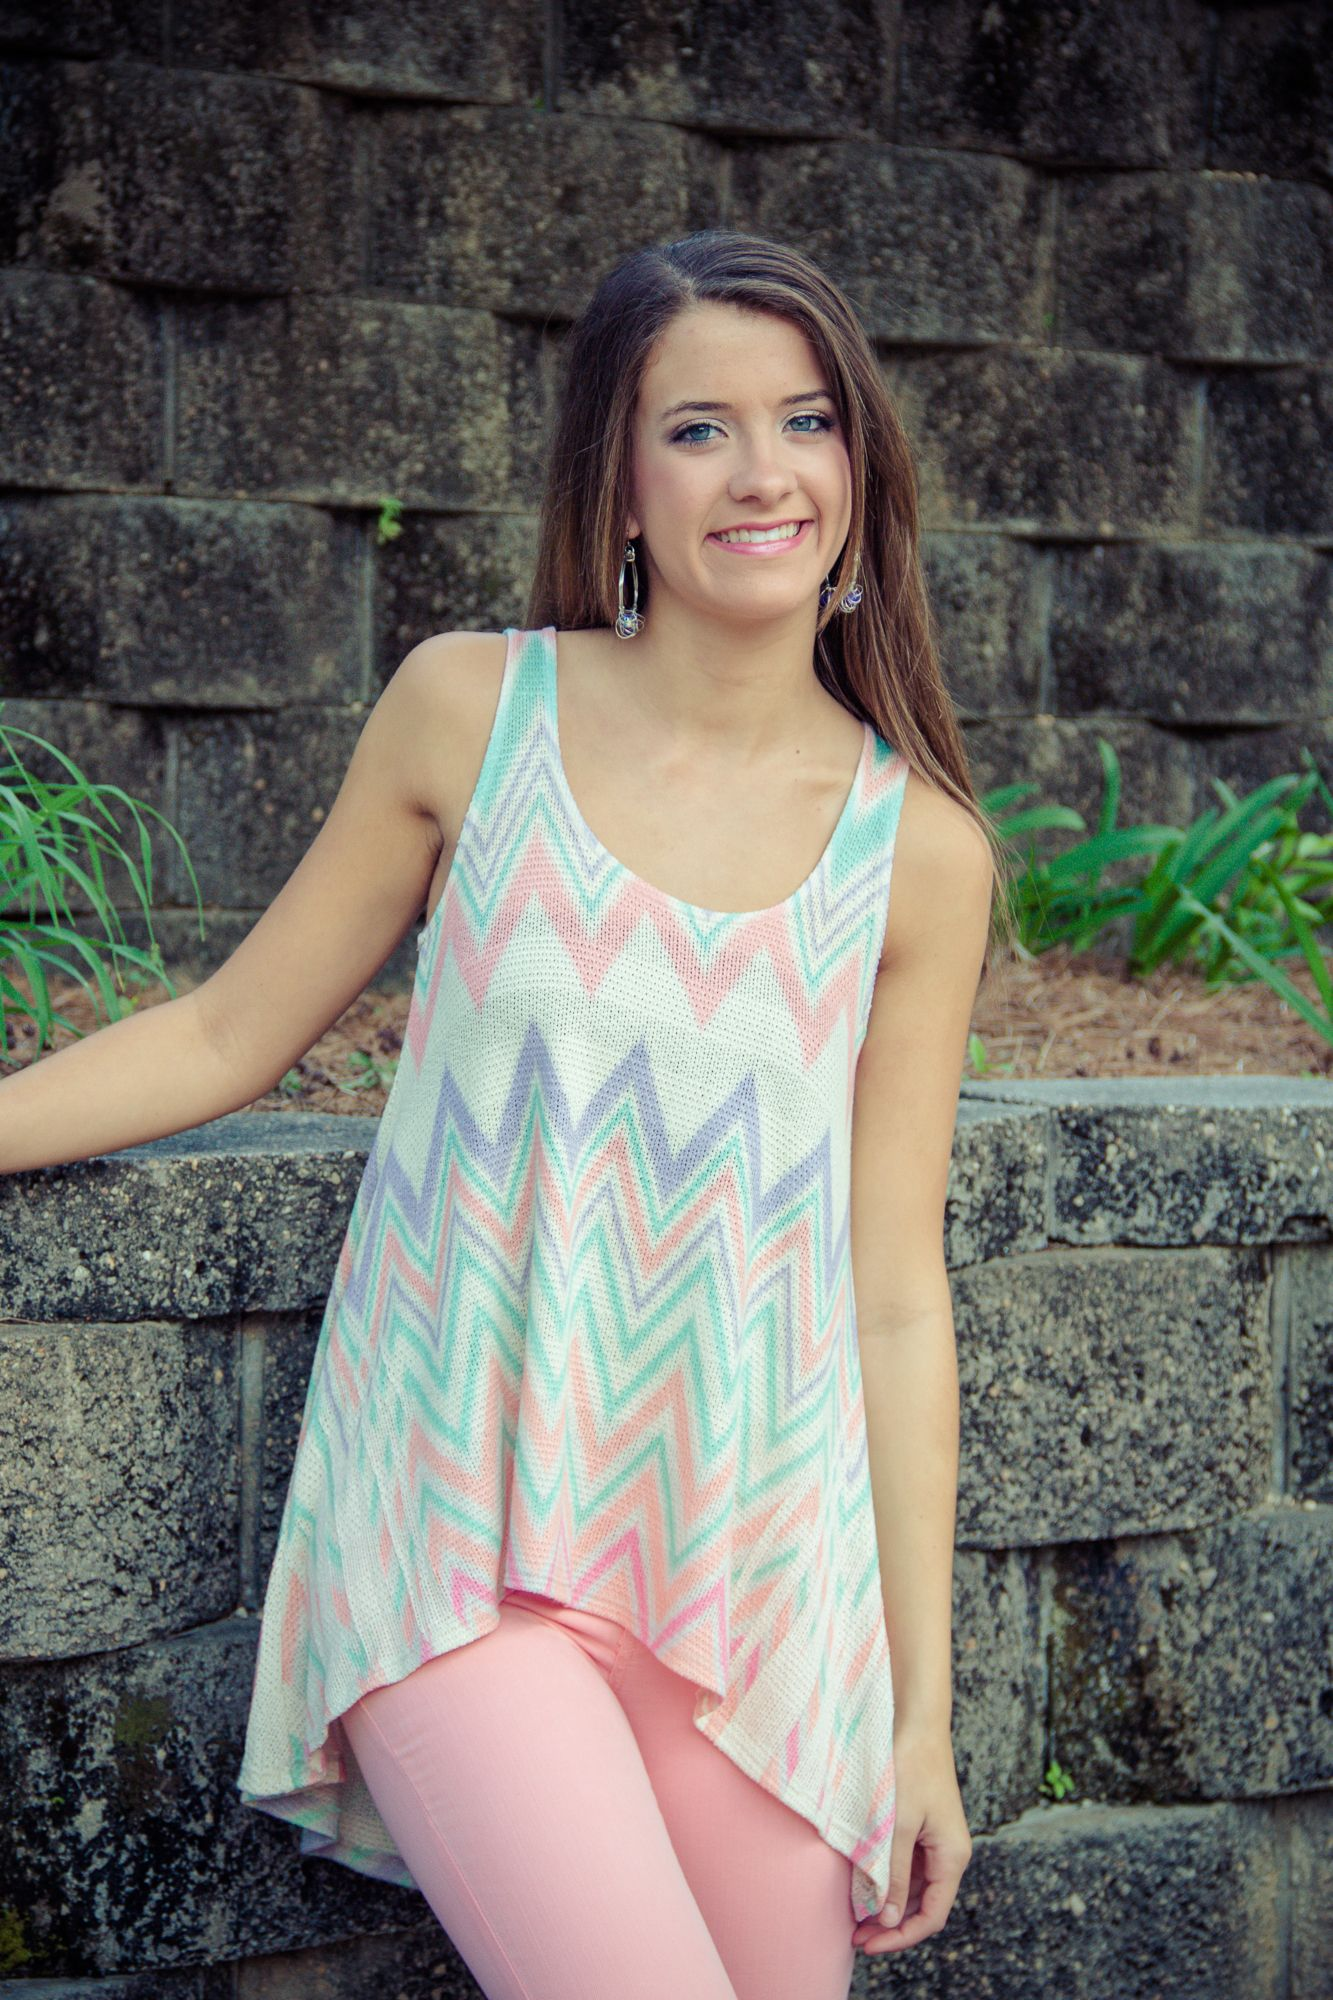 So easy and Chic in this pastel chevron high/low top!